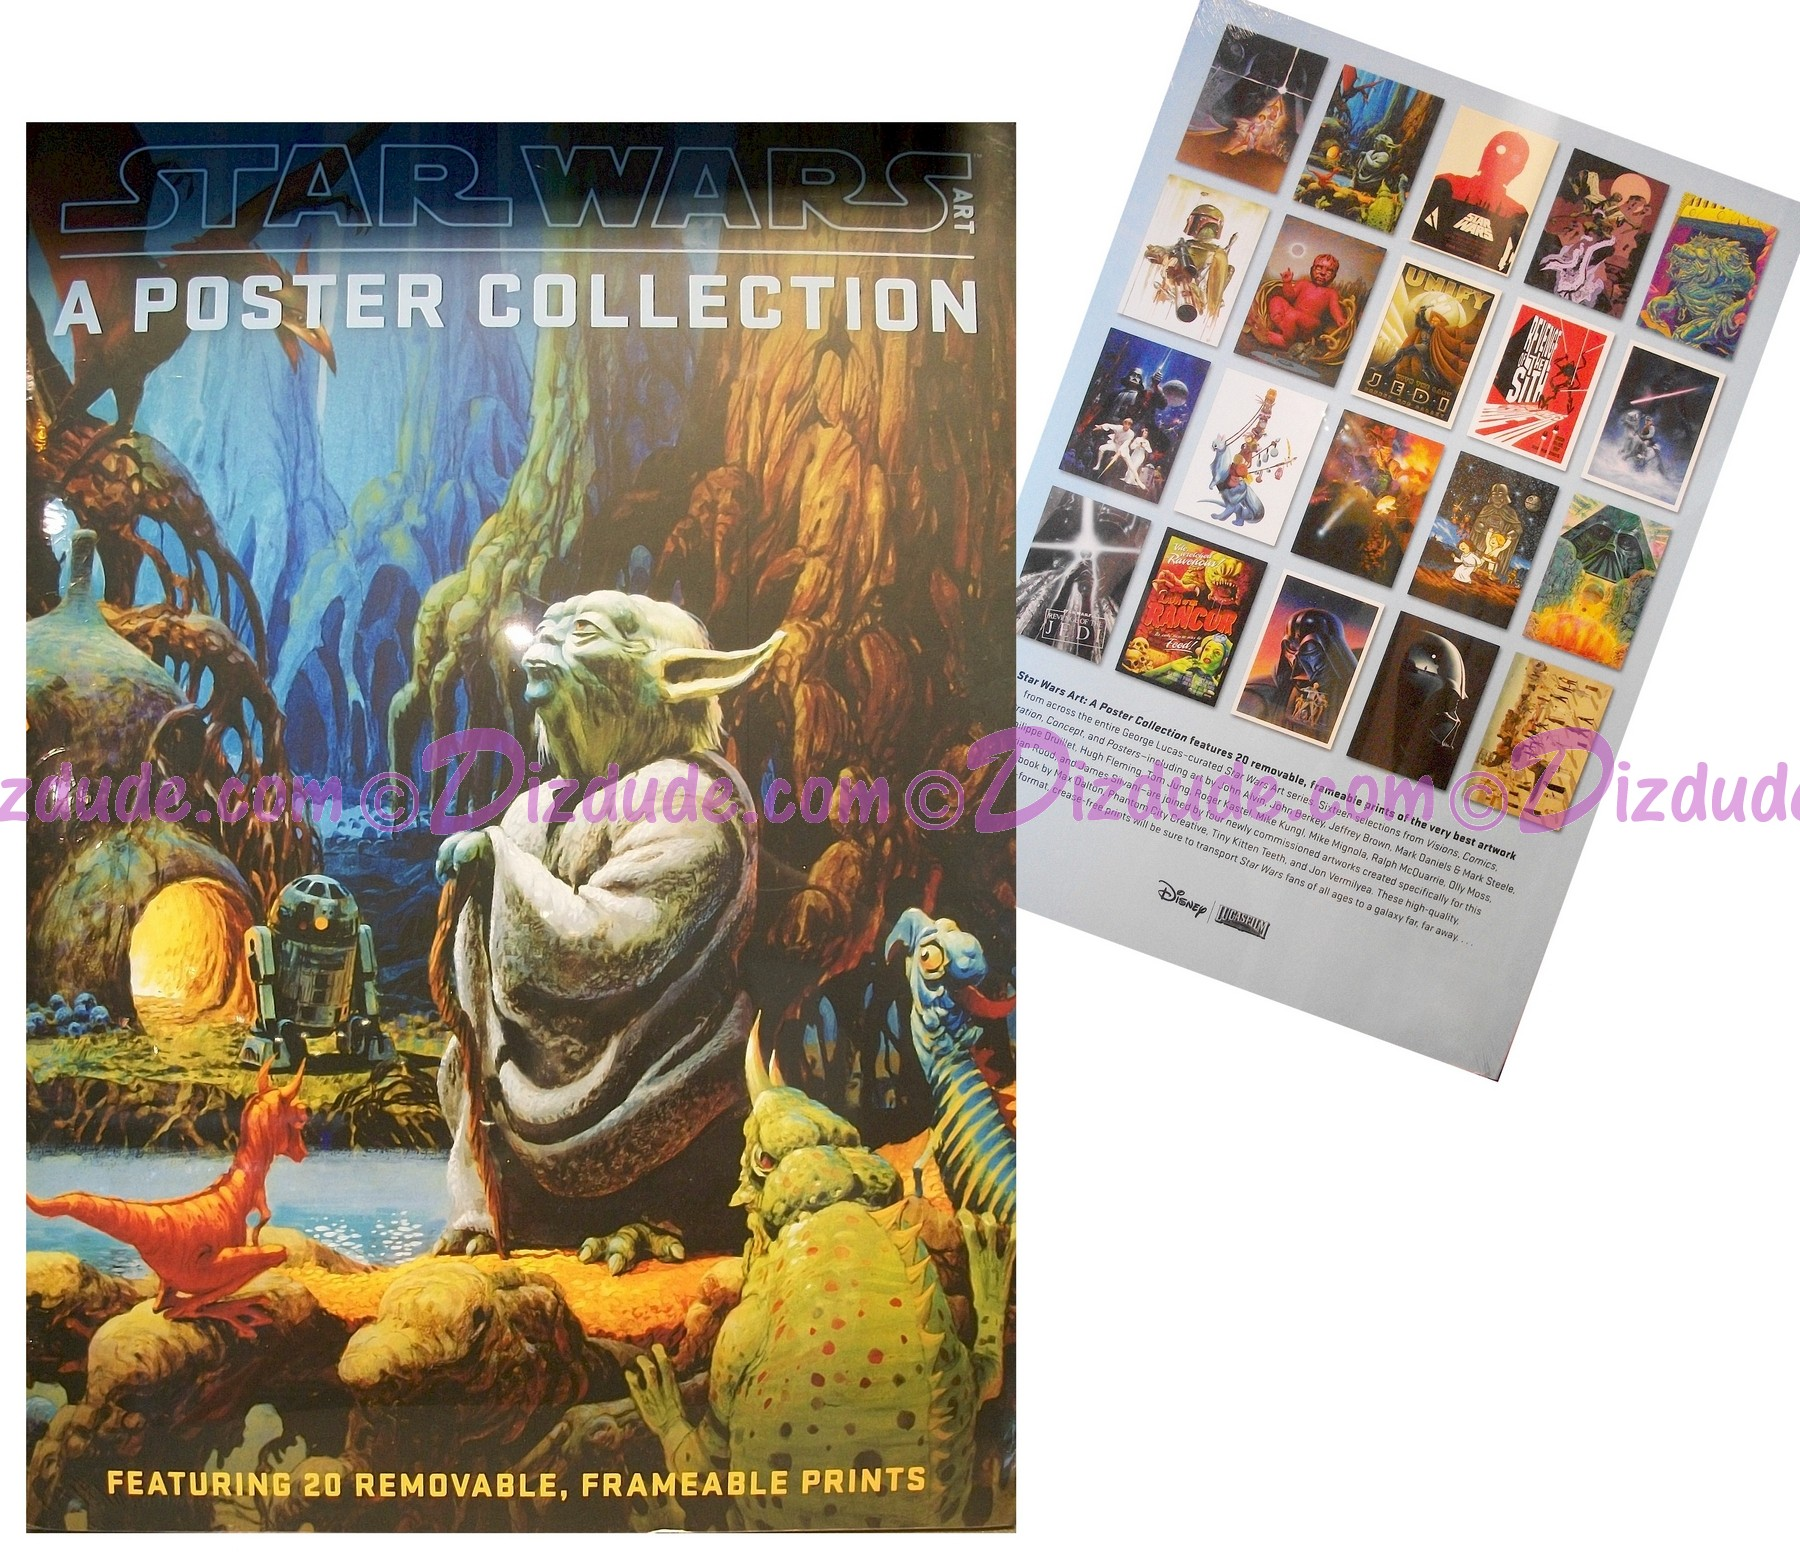 Disney Star Wars Art - A Poster Collection with 20 Frameable Prints © Dizdude.com